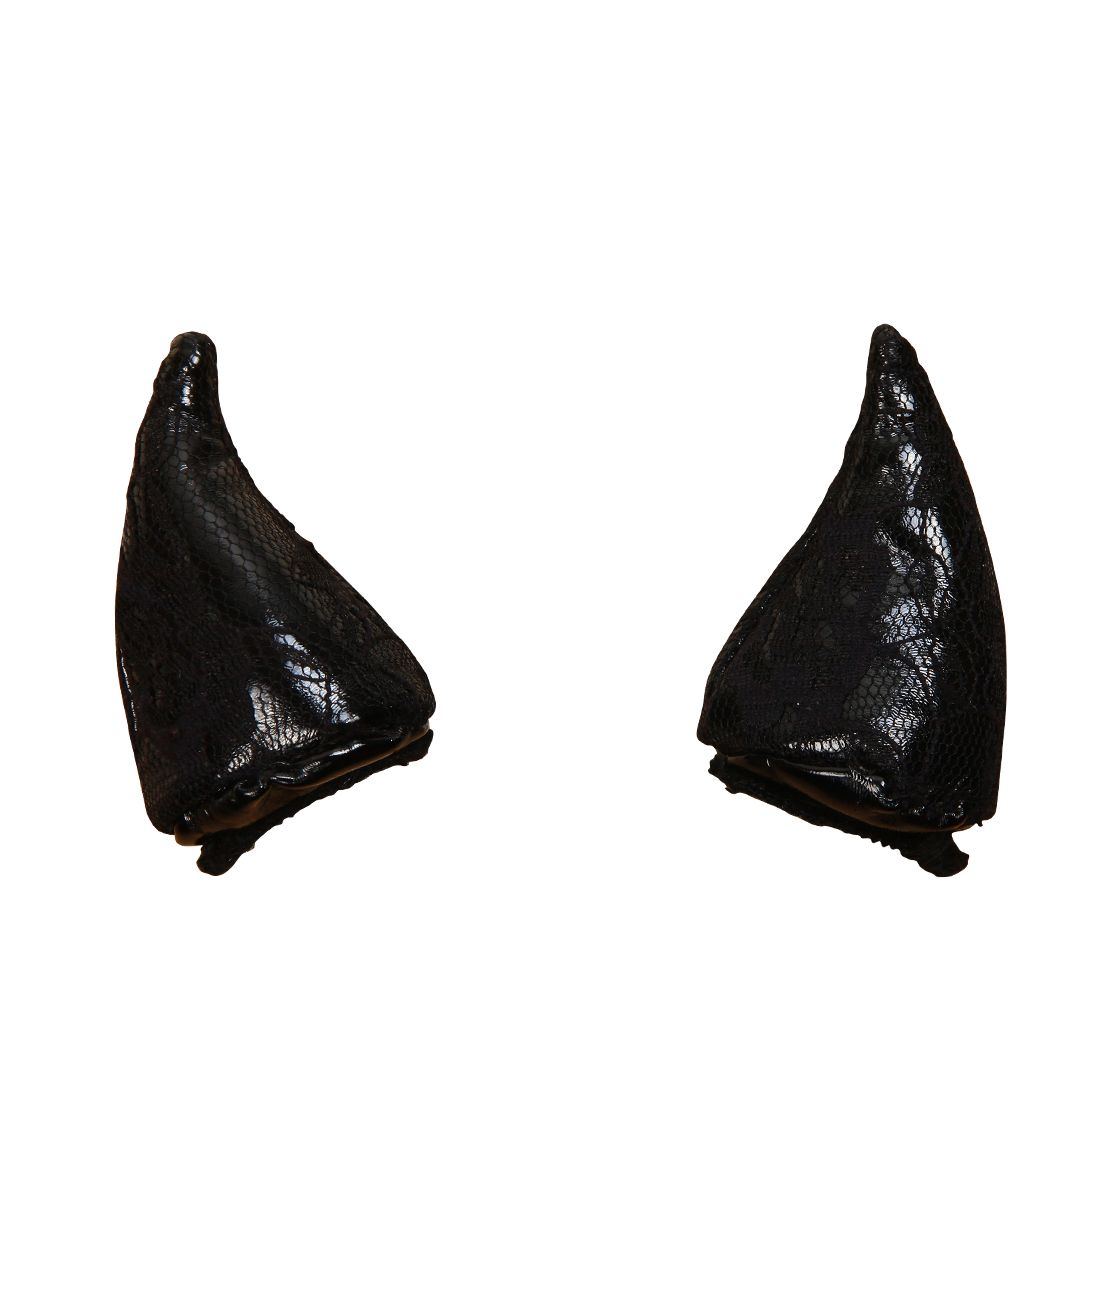 Leh Consequences Devil horn hair clip (set of two)